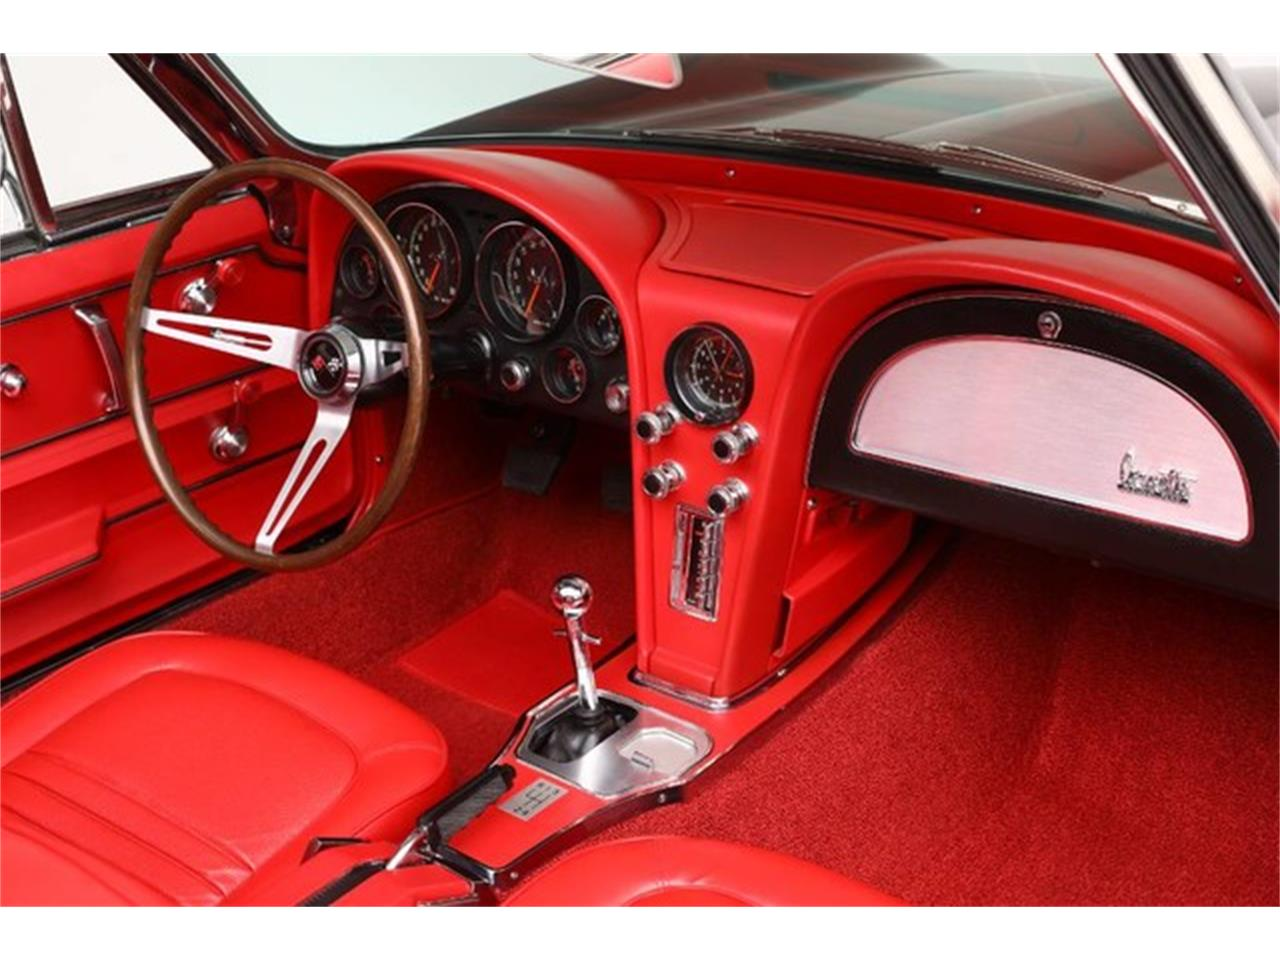 Large Picture of Classic '67 Chevrolet Corvette located in New York Offered by Prestige Motor Car Co. - PU42